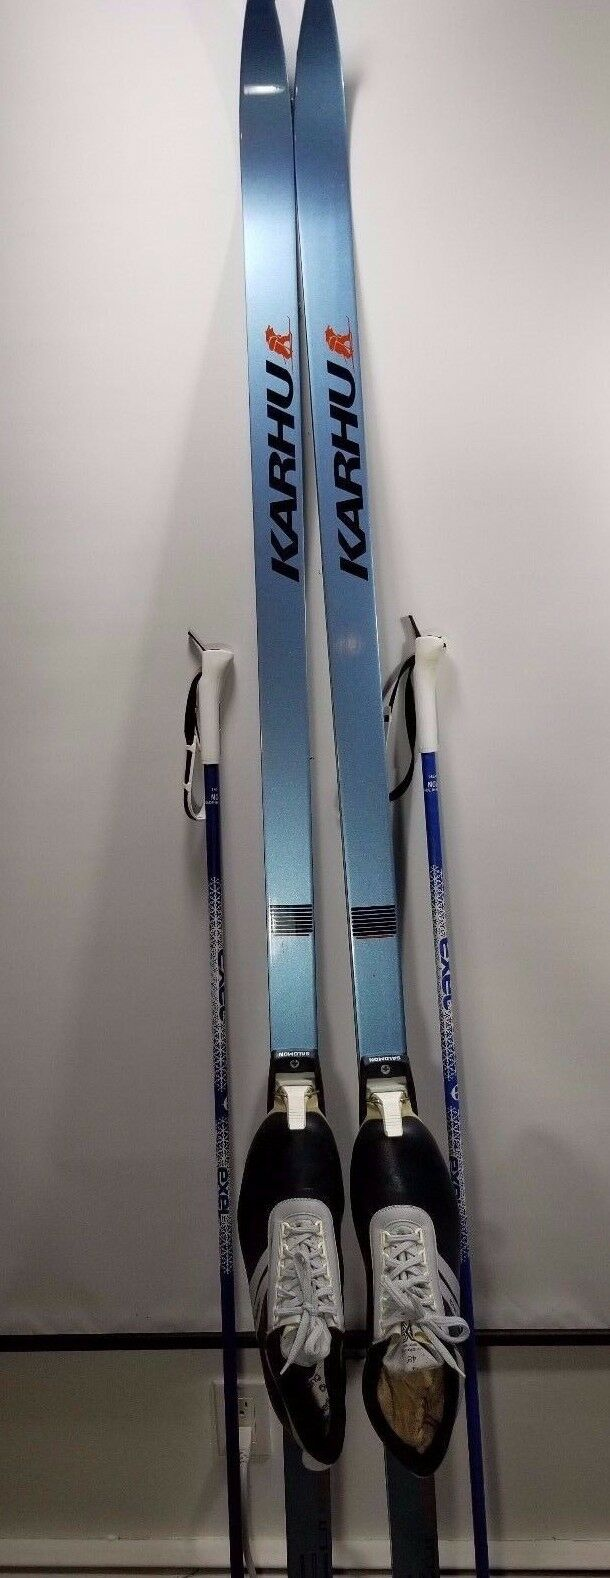 Karhu 210 Graphite Cut Knetic Cross County Skis w Poles & Ski Boots w Carry Bag